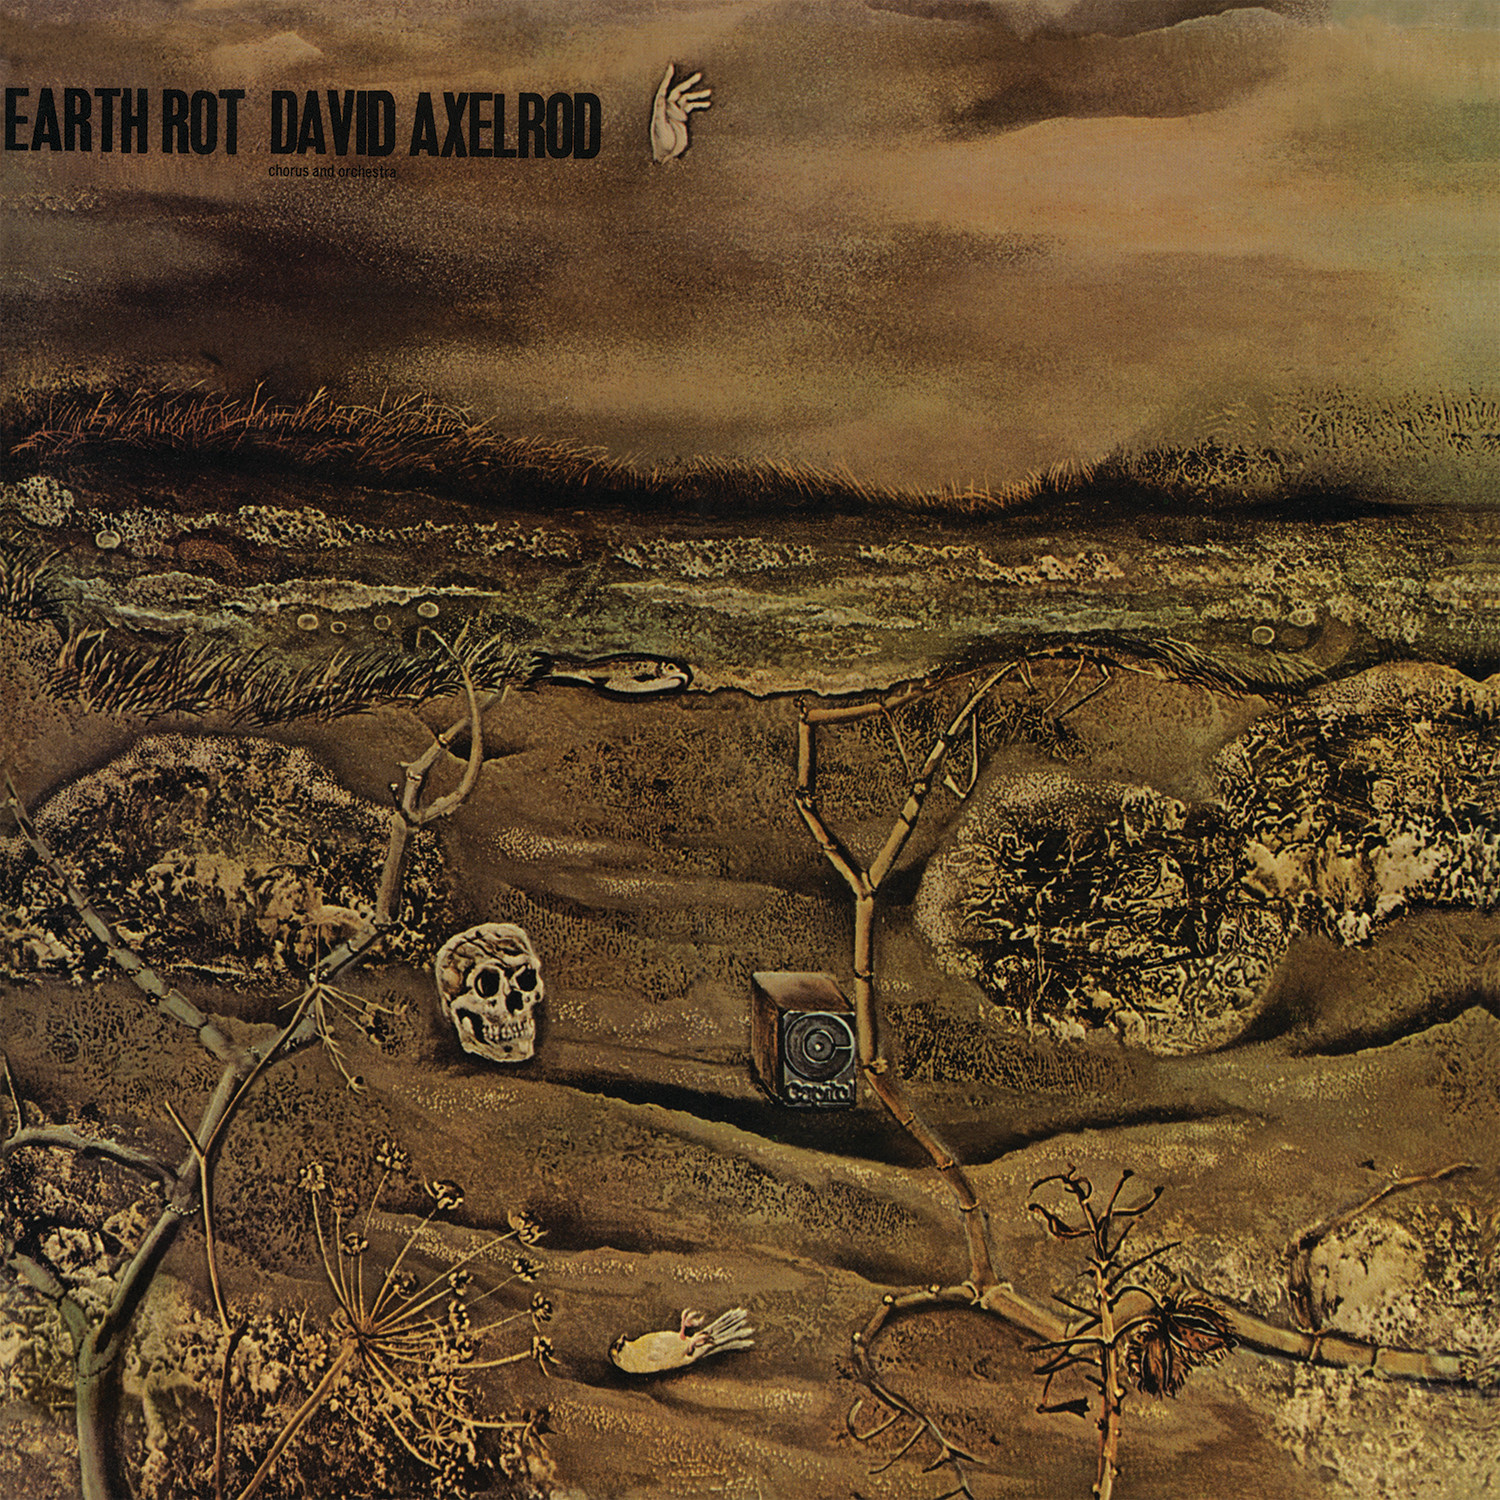 Jazz David Axelrod - Earth Rot (Audiophile Reissue)